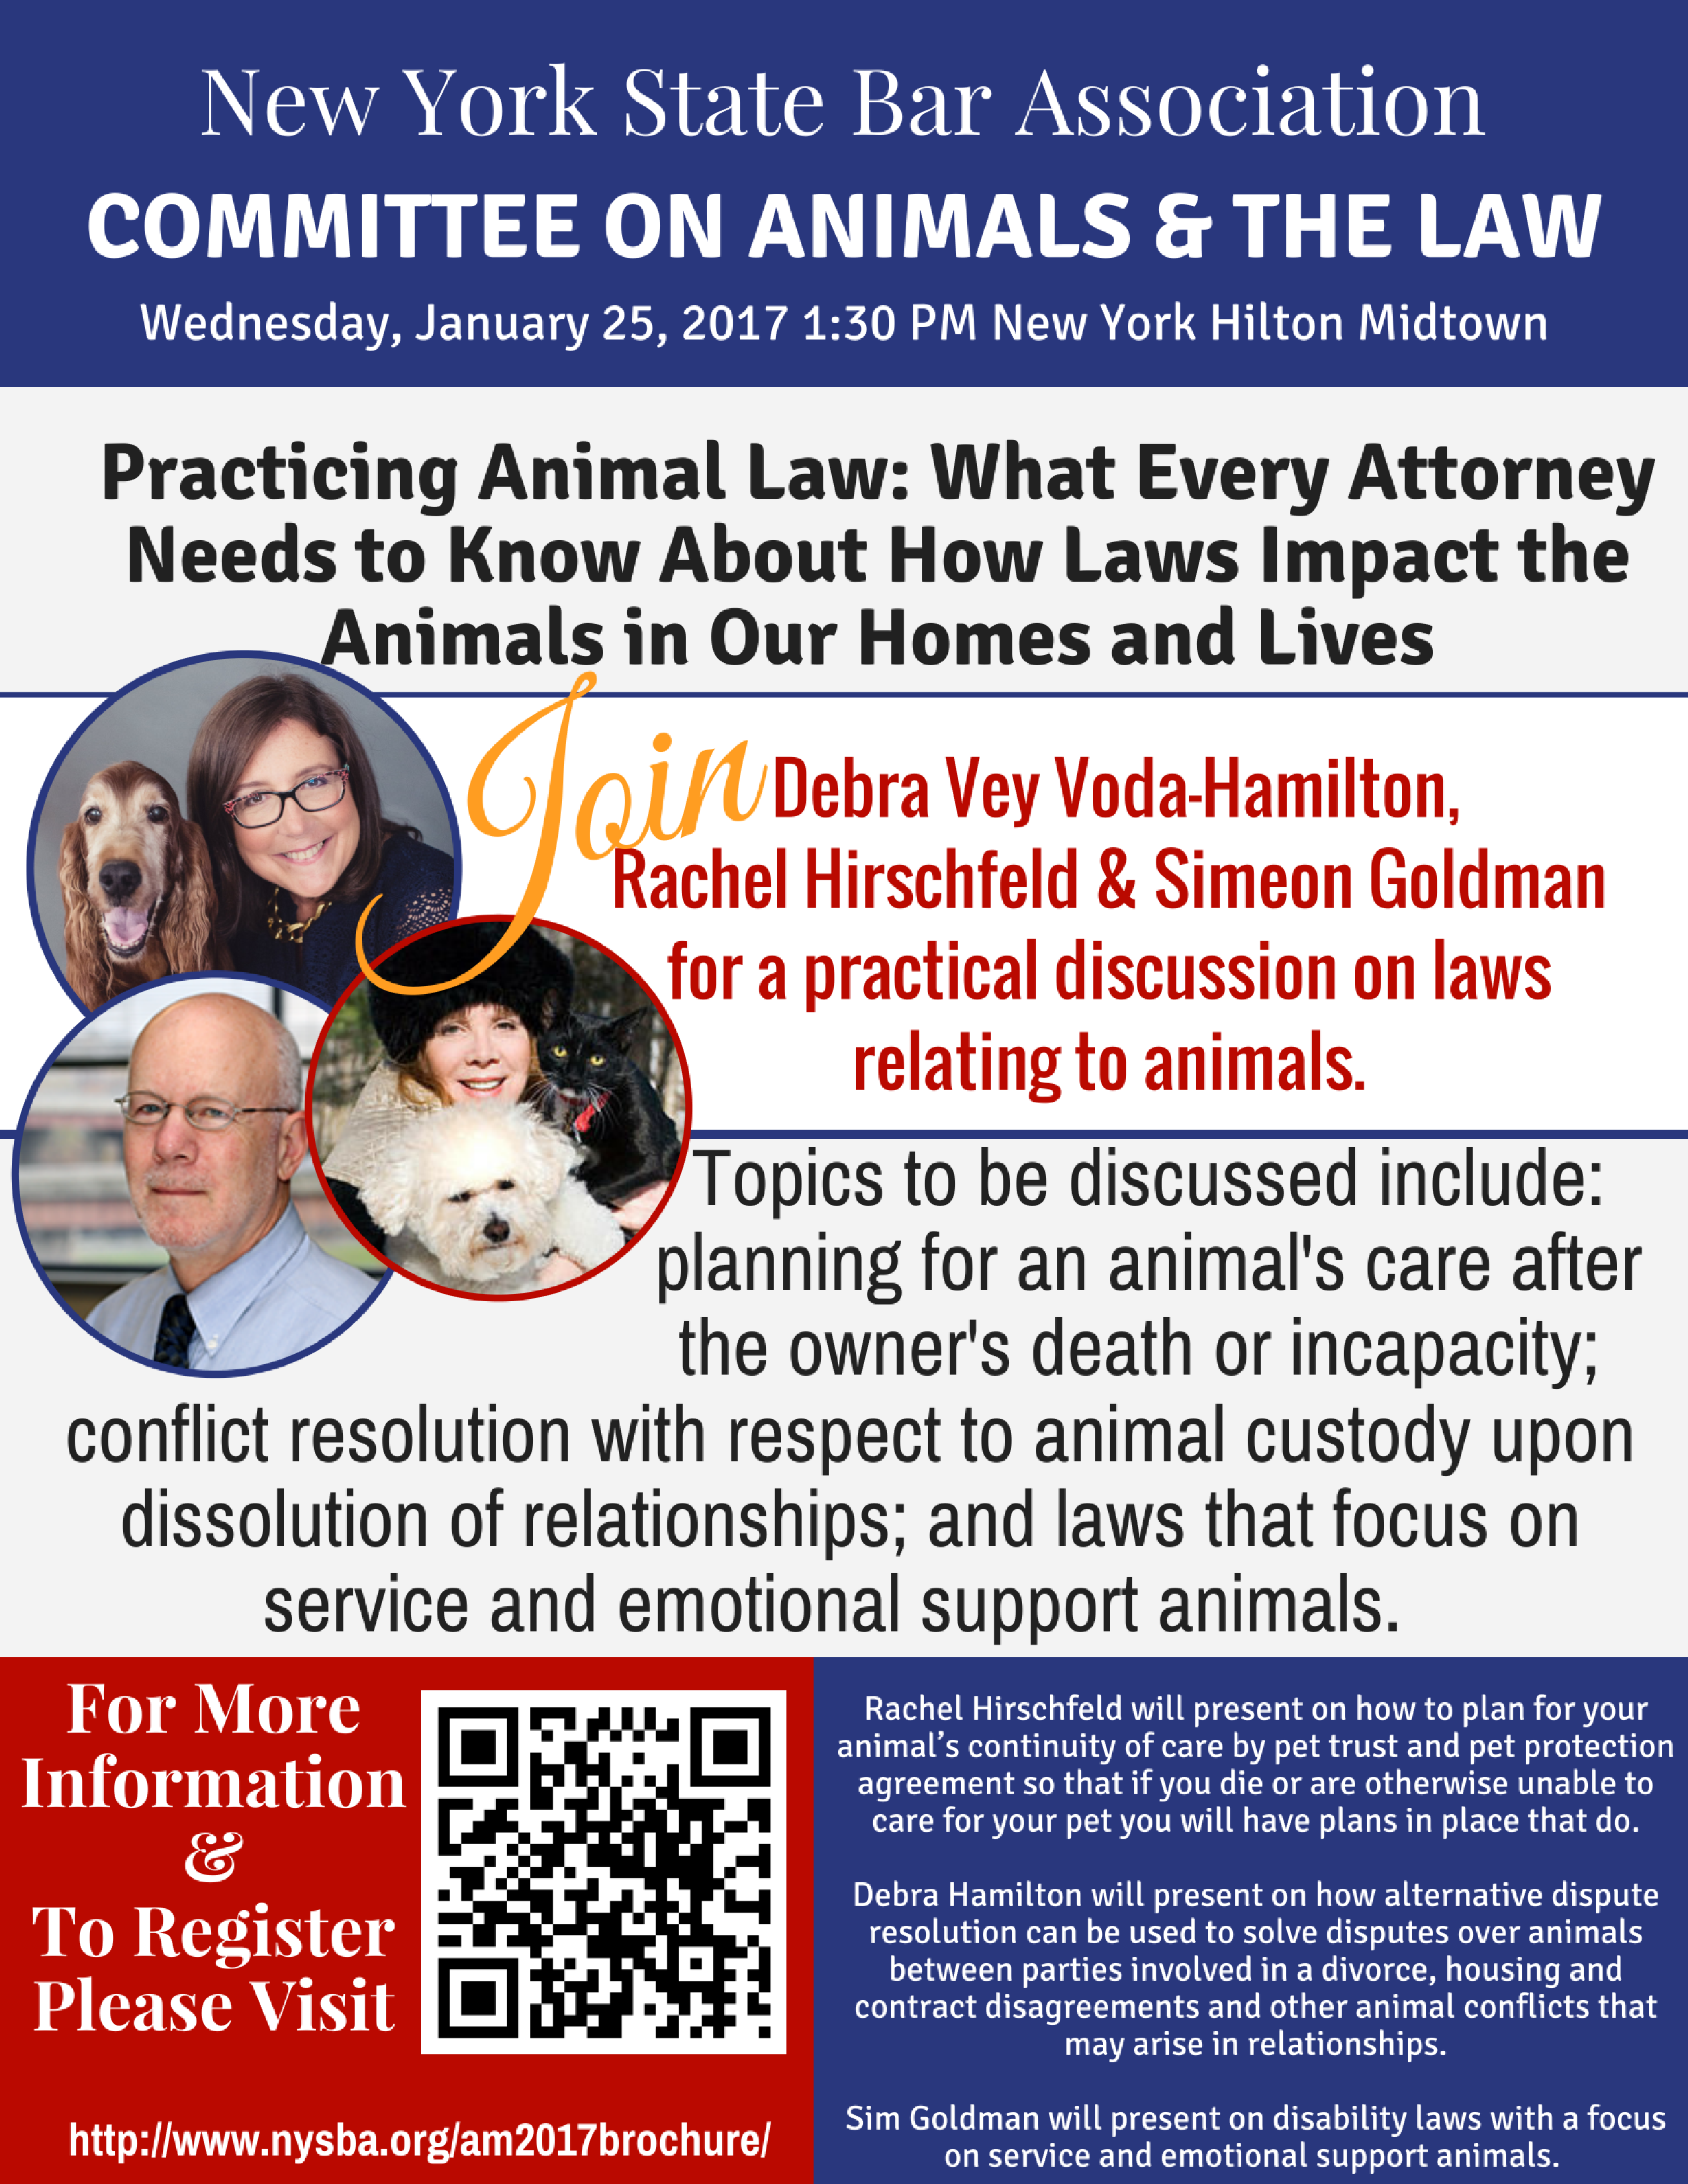 NYSBA 2017 – Practicing Animal Law: How Laws Impact the Animals In Our Lives